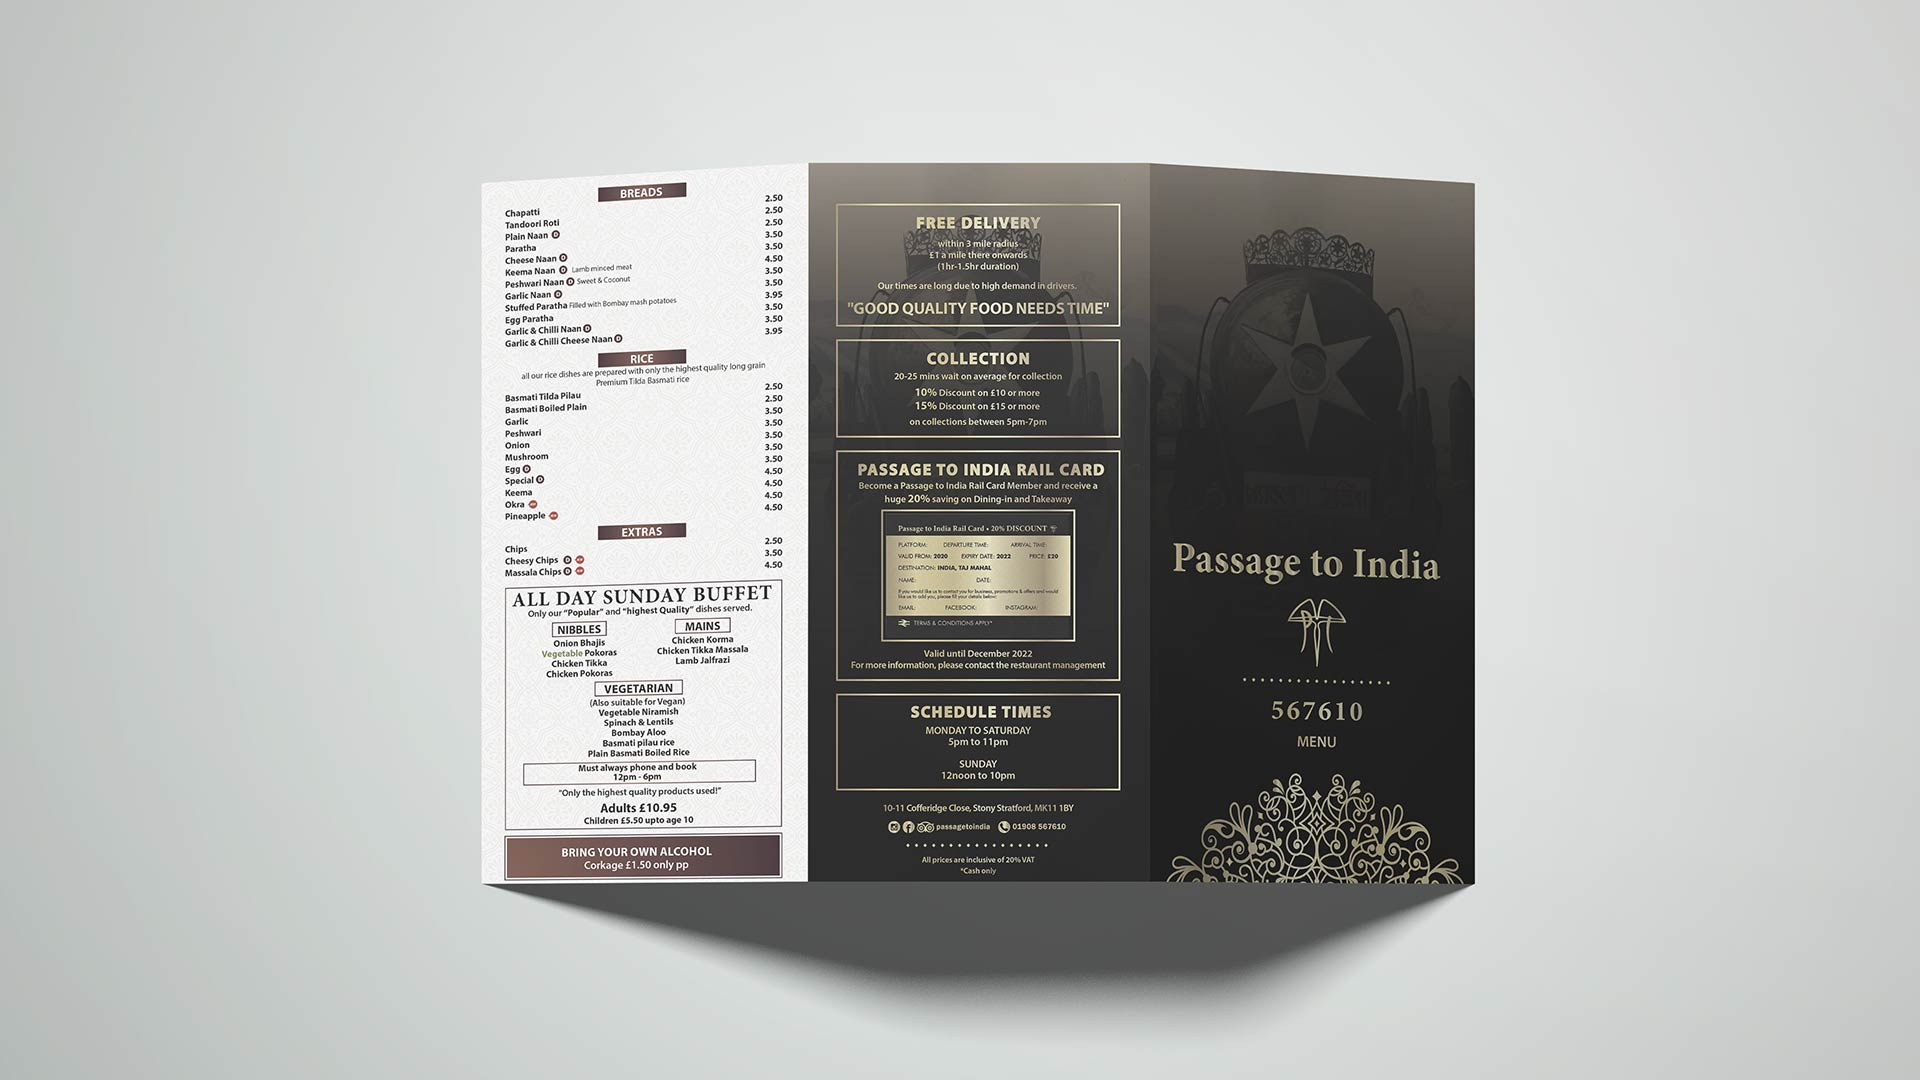 branding, dine in menu design passage to india